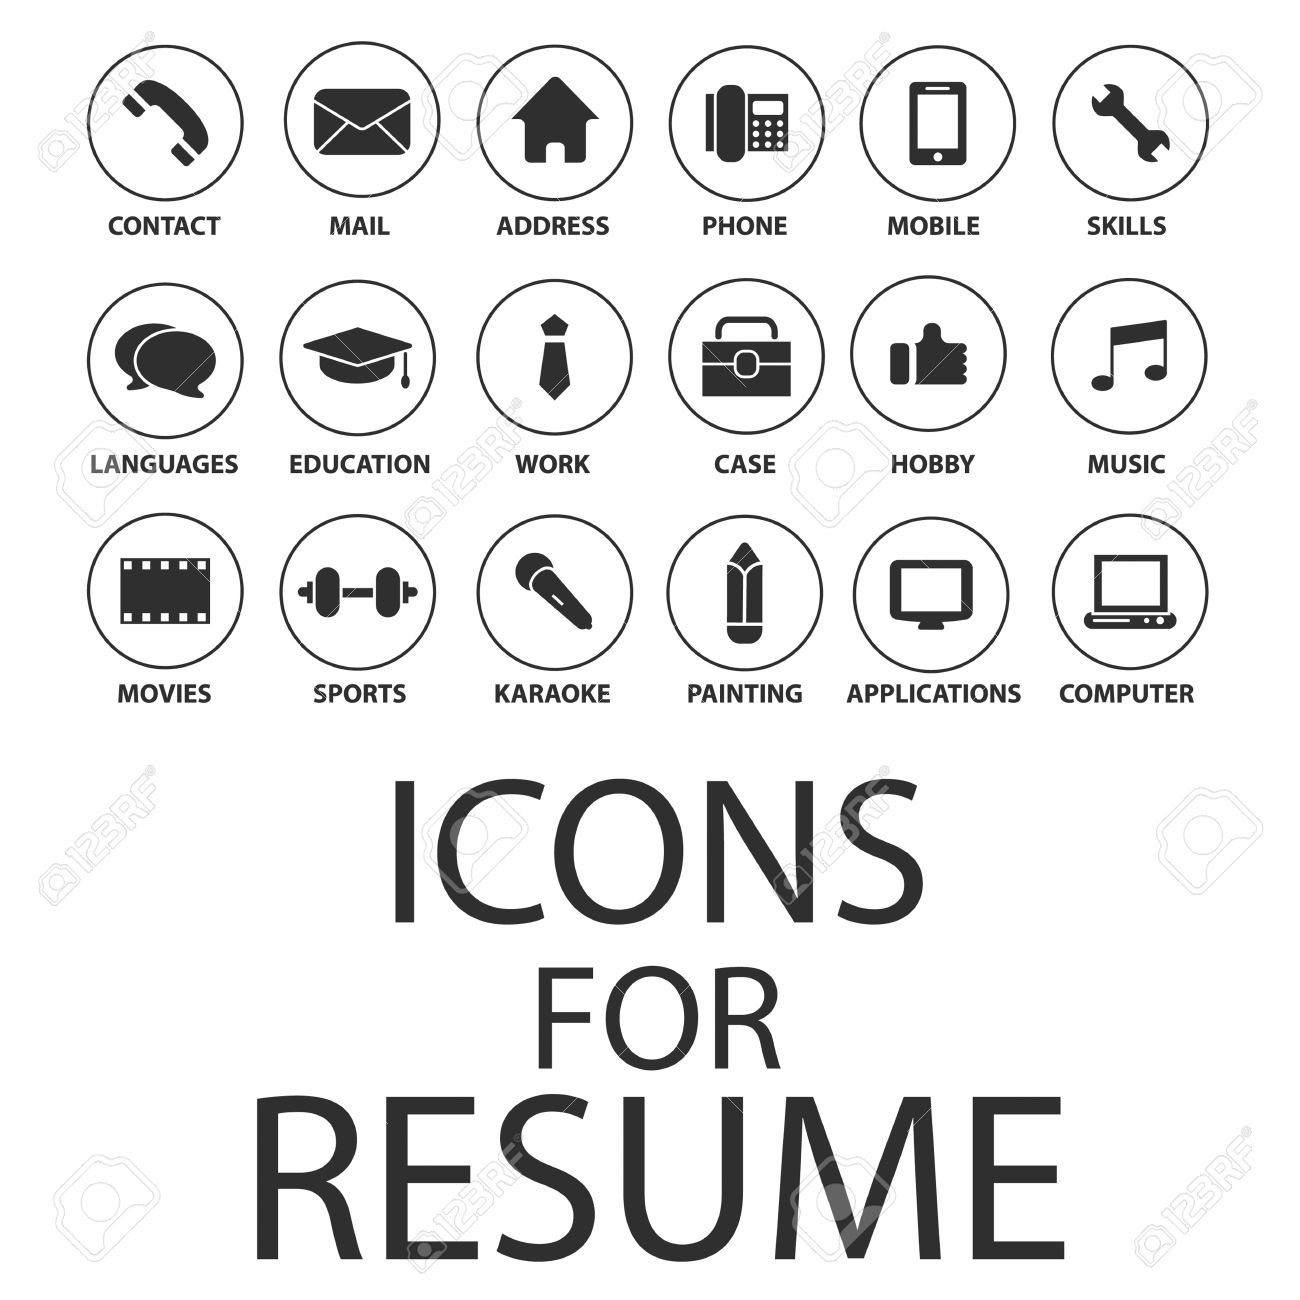 Icons Set For Your Resume Cv Job Modele De Cv Design Icones Cv Modele De Cv Creatif